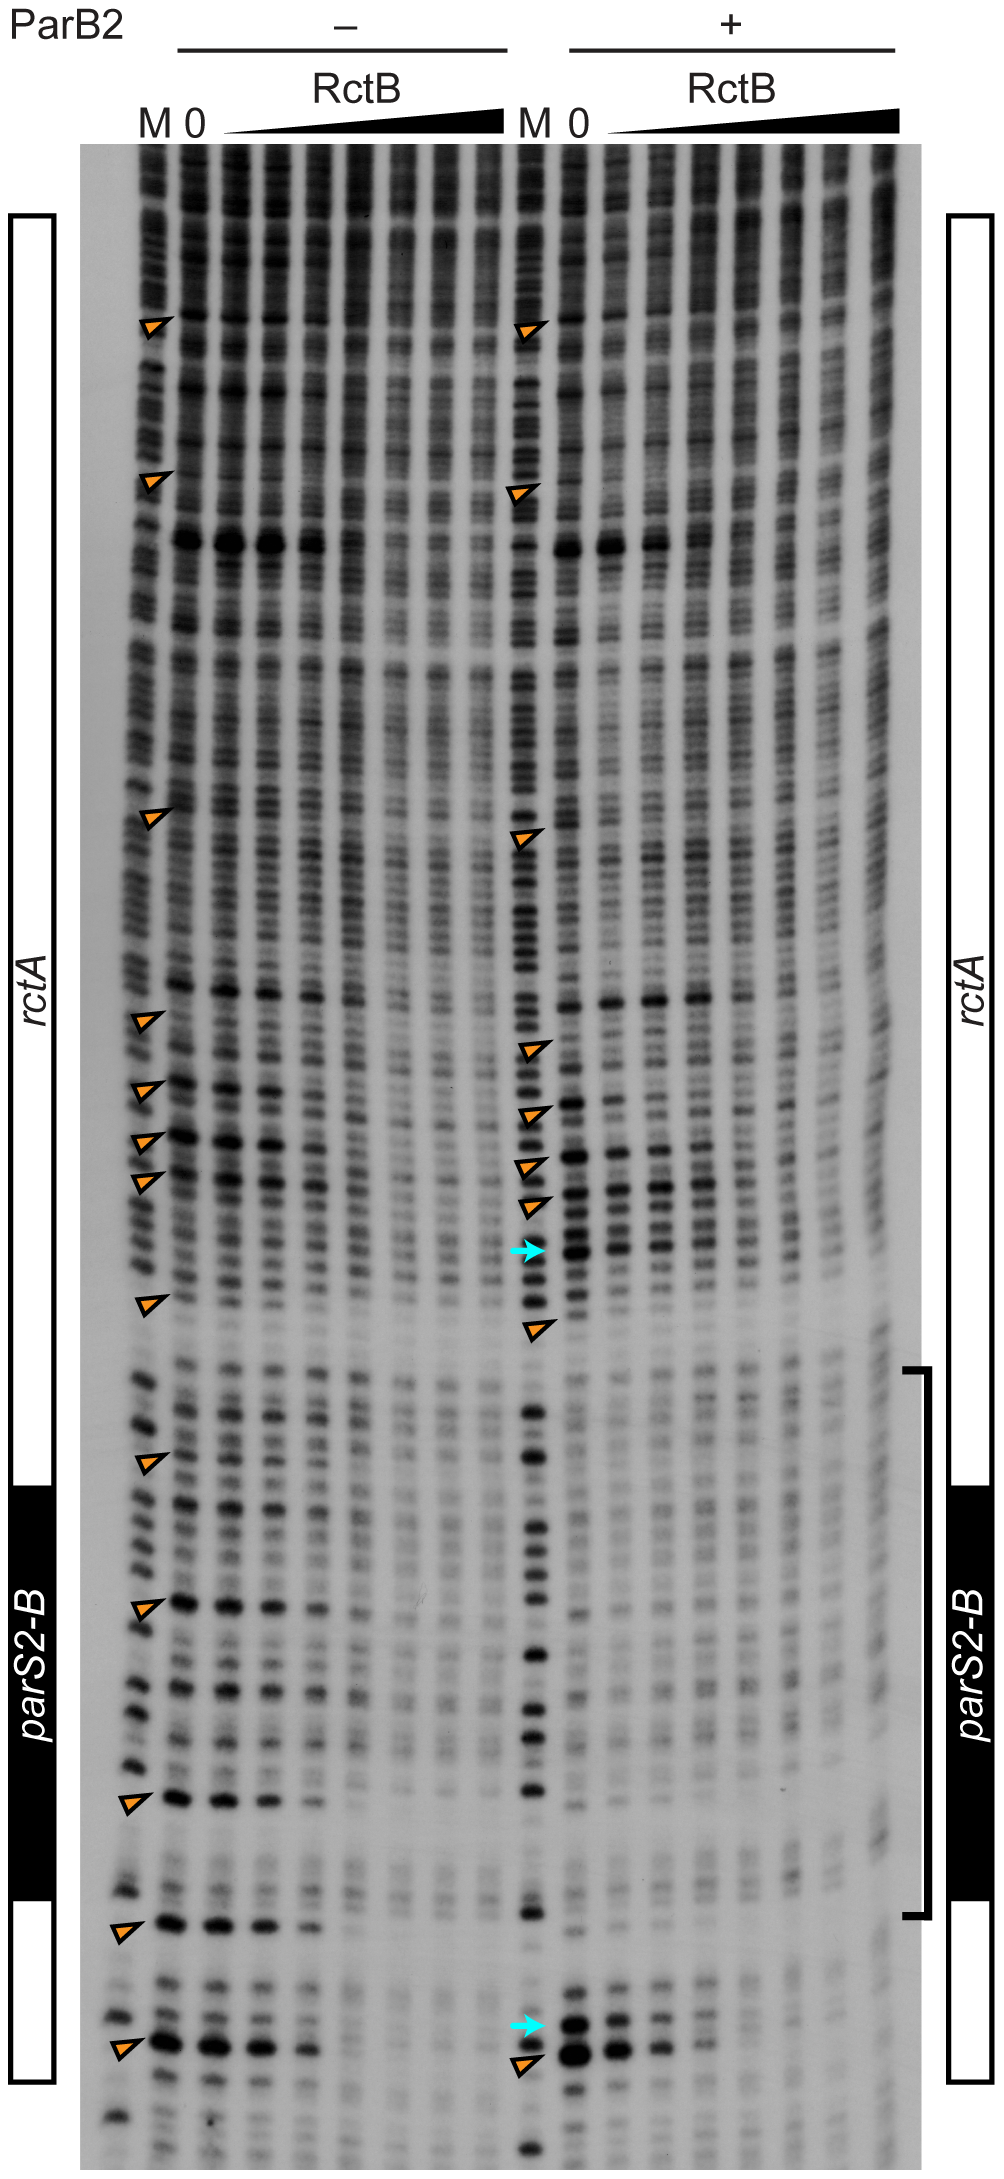 Protection of <i>rctA</i> from DNase I digestion in the presence of RctB or RctB and ParB2.